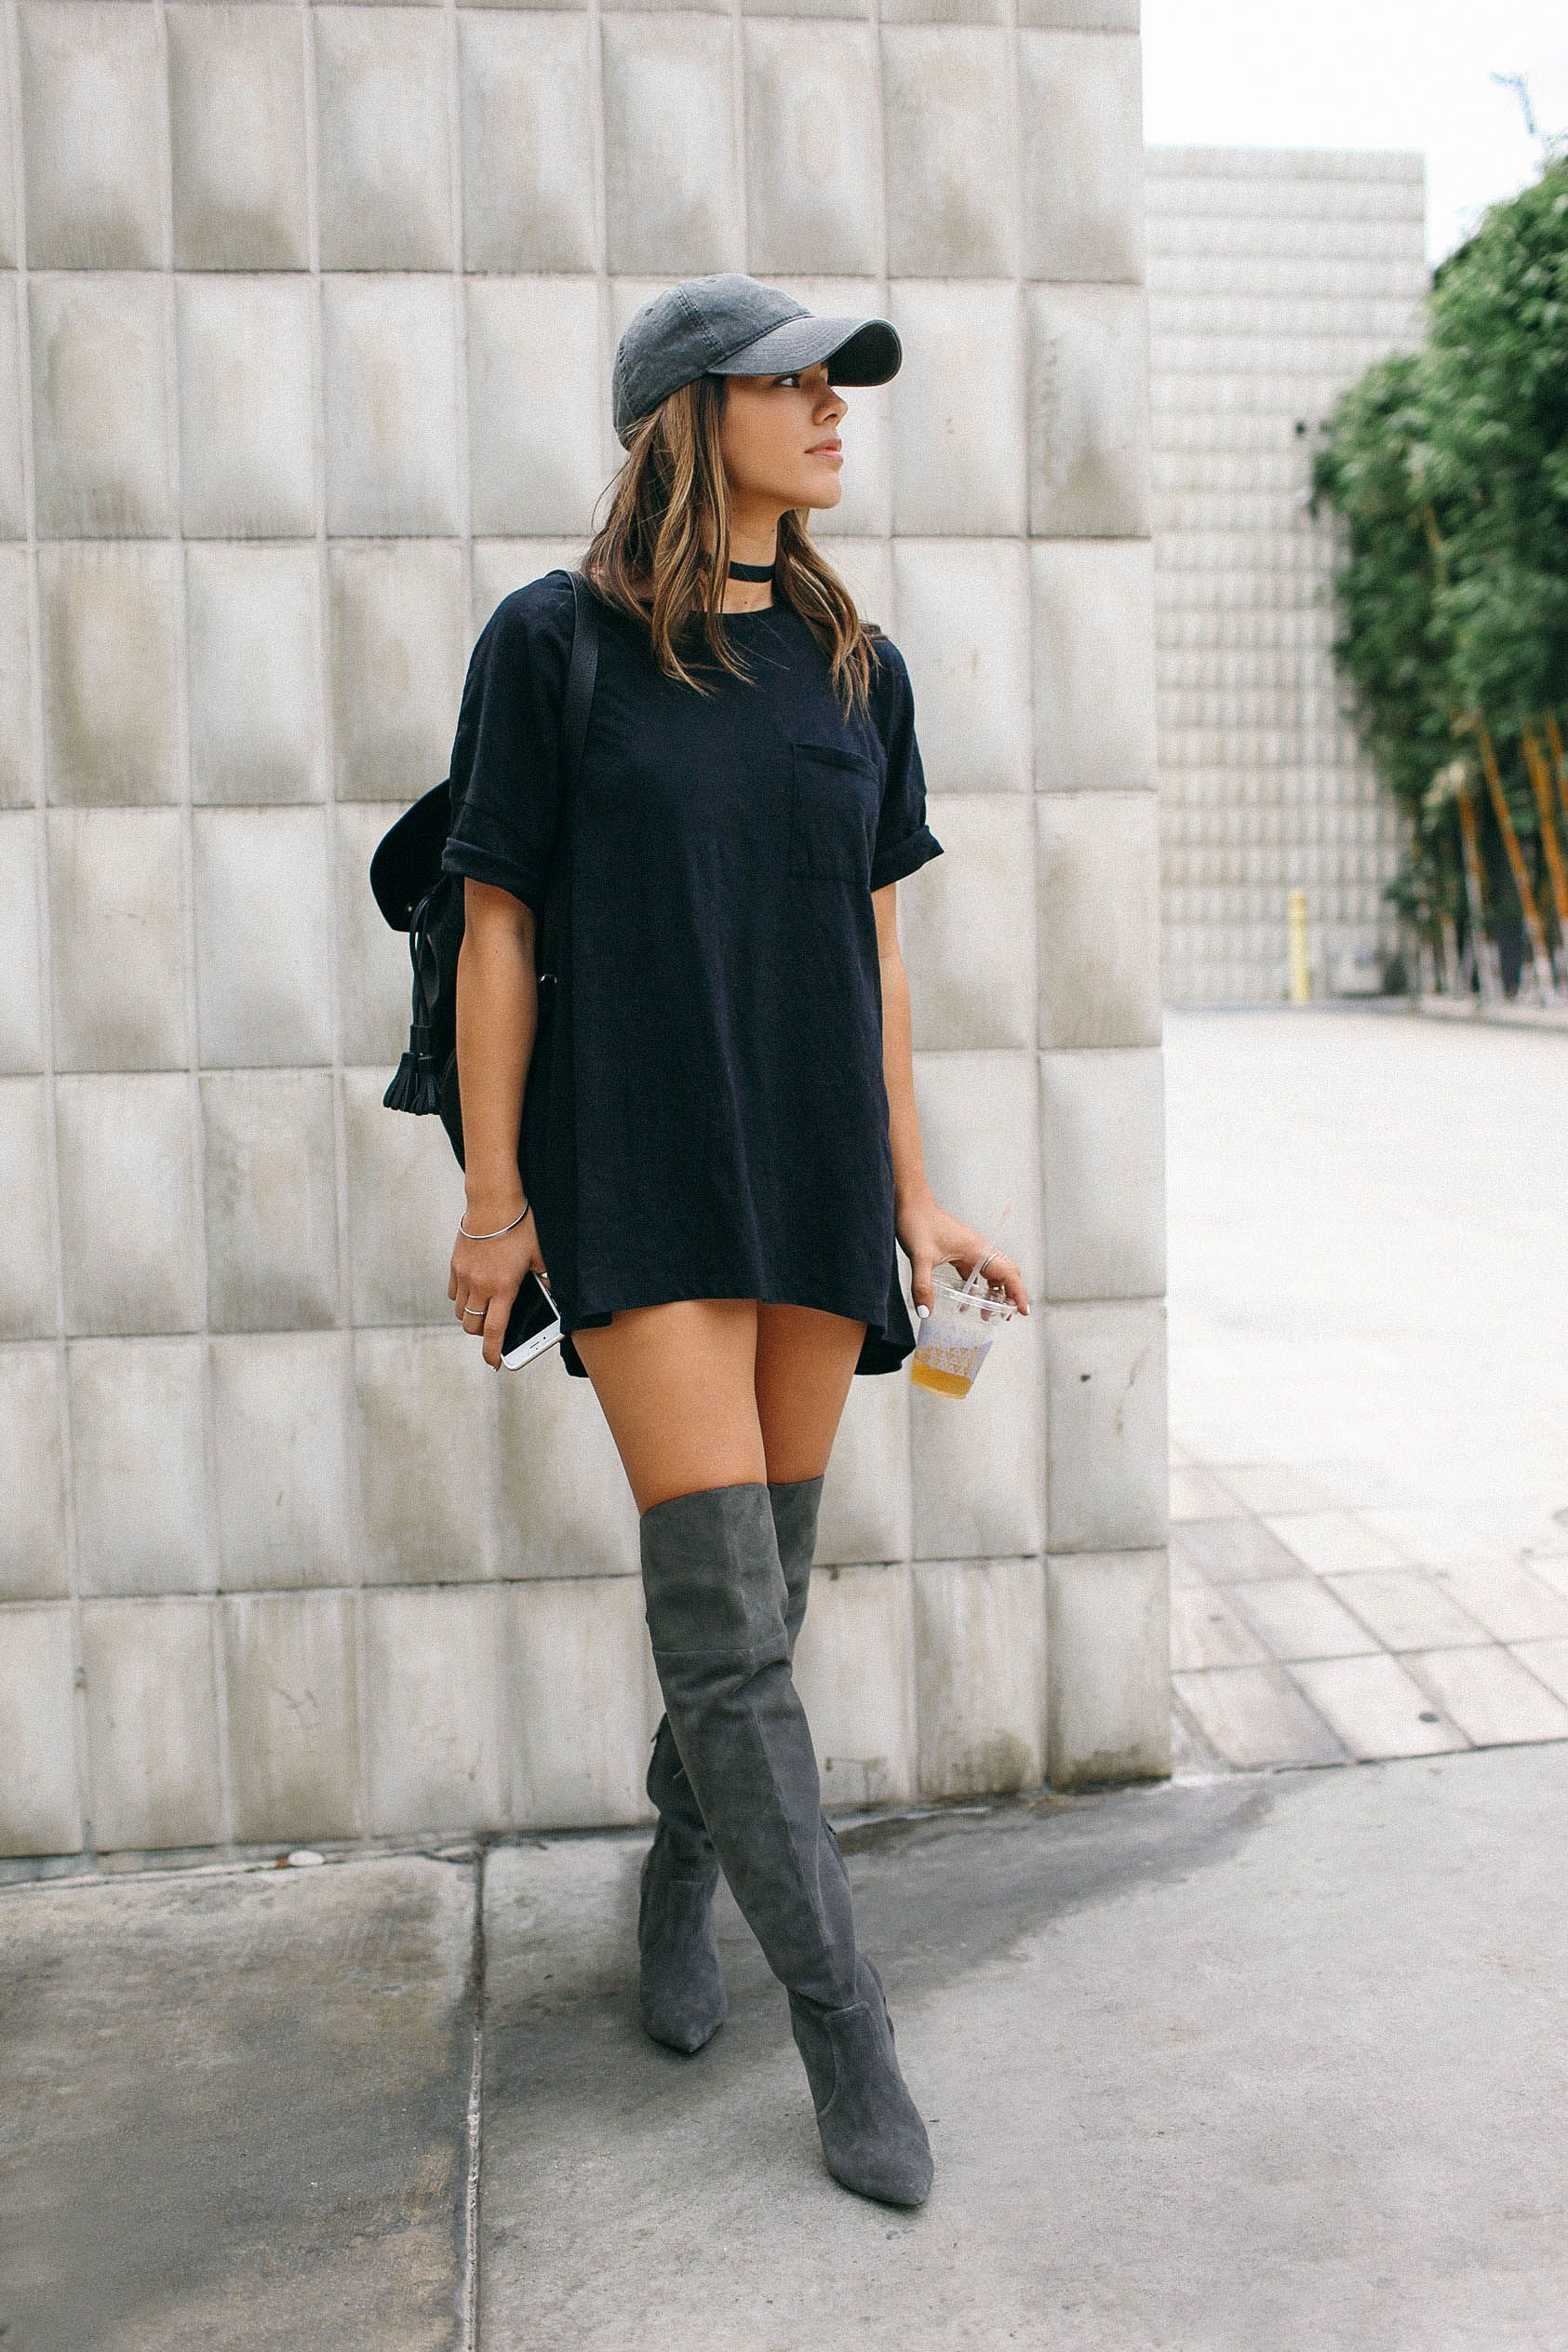 edgy fashion tumblr - photo #17